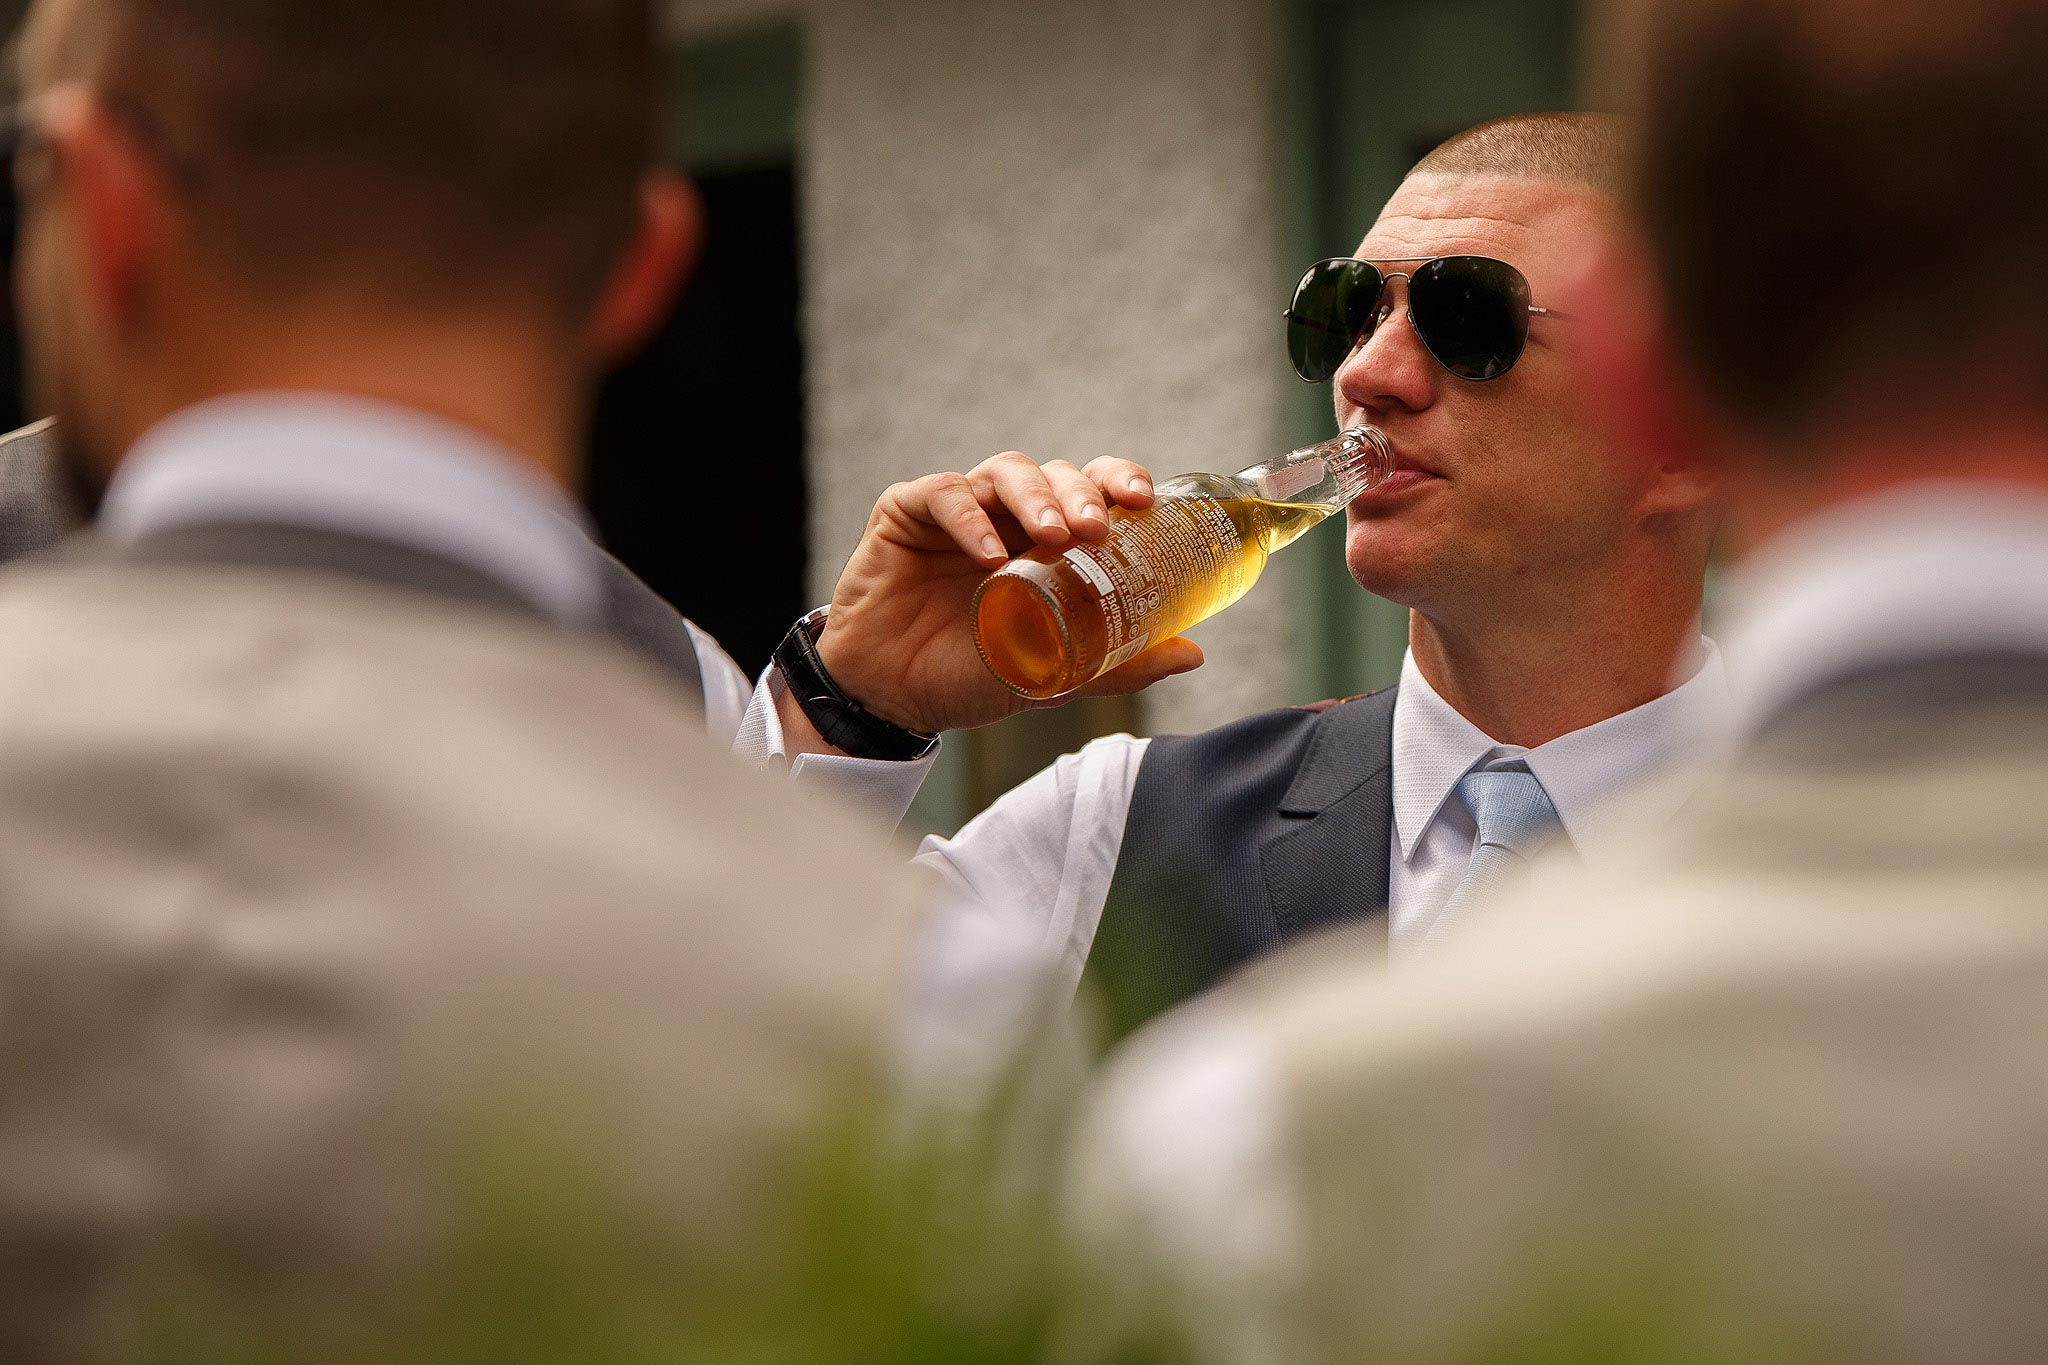 Photograph of a groom enjoying a drink with his friends